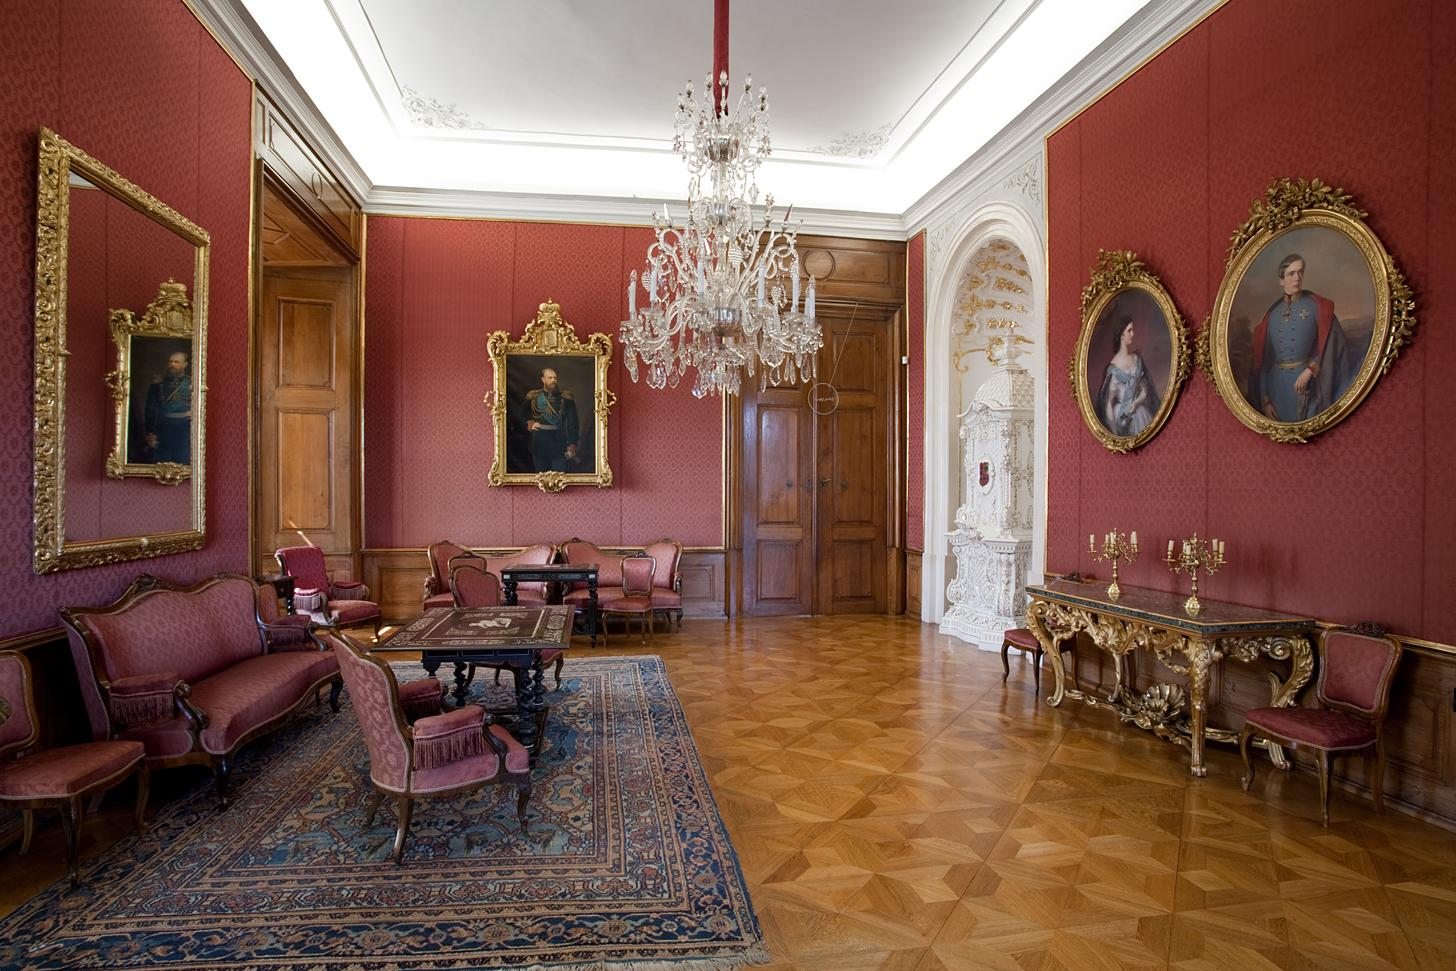 The Czar Salon is reminding honoured guests of the Castle in 1885, portrait of Czar Alexander III and wedding portraits of Emperor Franz Joseph II and his beuatiful wife Elisabeth called Sissi. On their wedding portraits they are 23 and 16 years old. When they visited Kroměříž they were, however much older. - © Tomas Vrtal